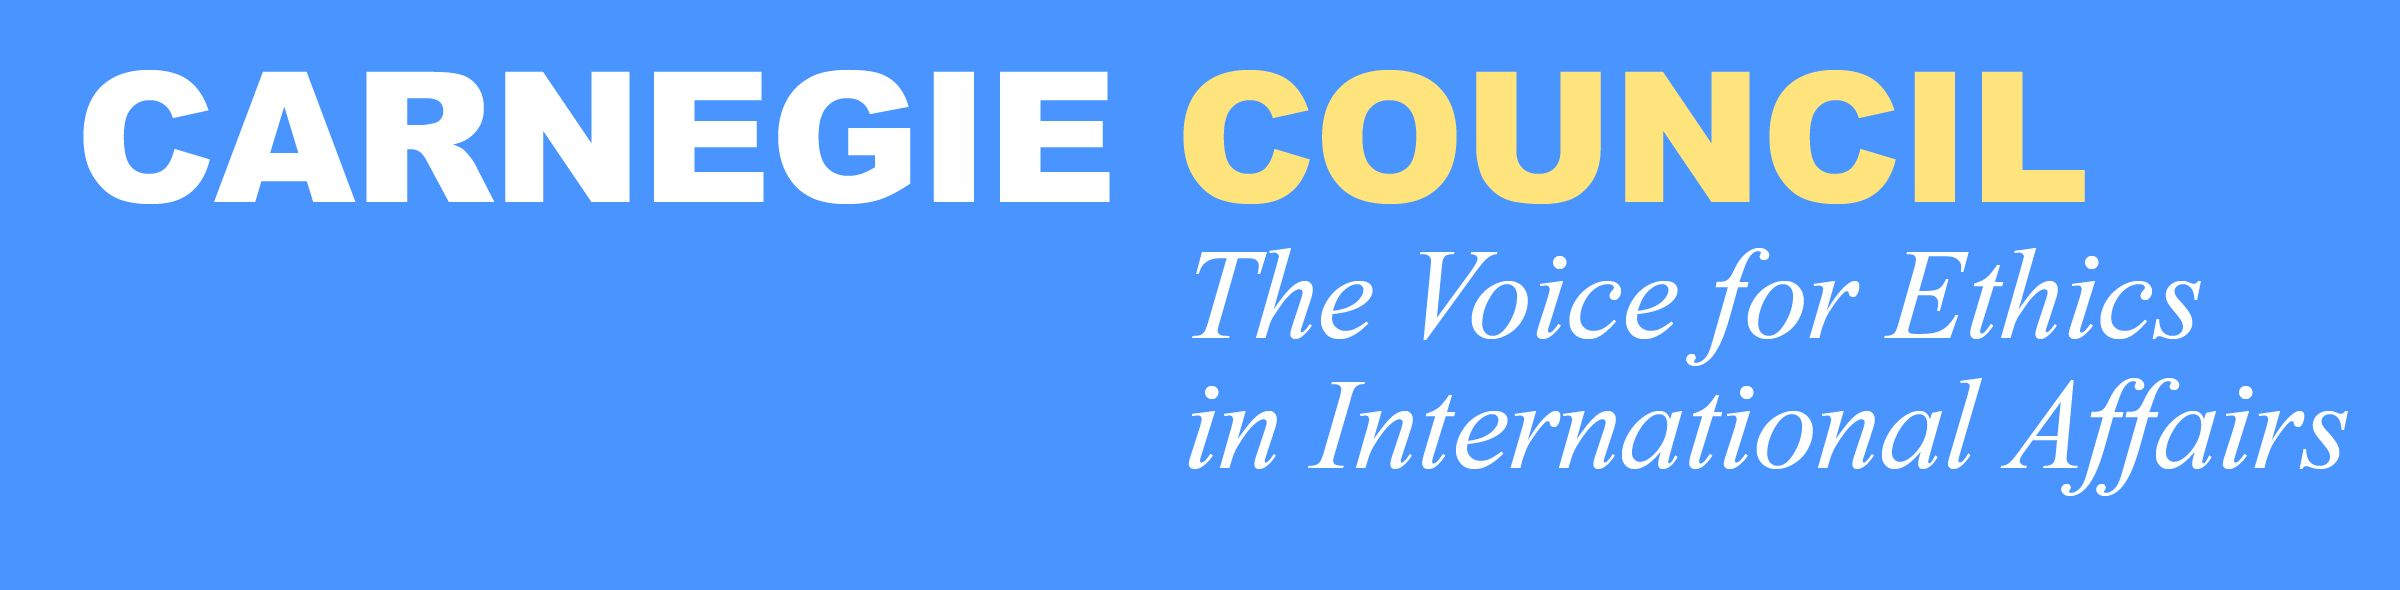 logo for Carnegie Council for Ethics in International Affairs